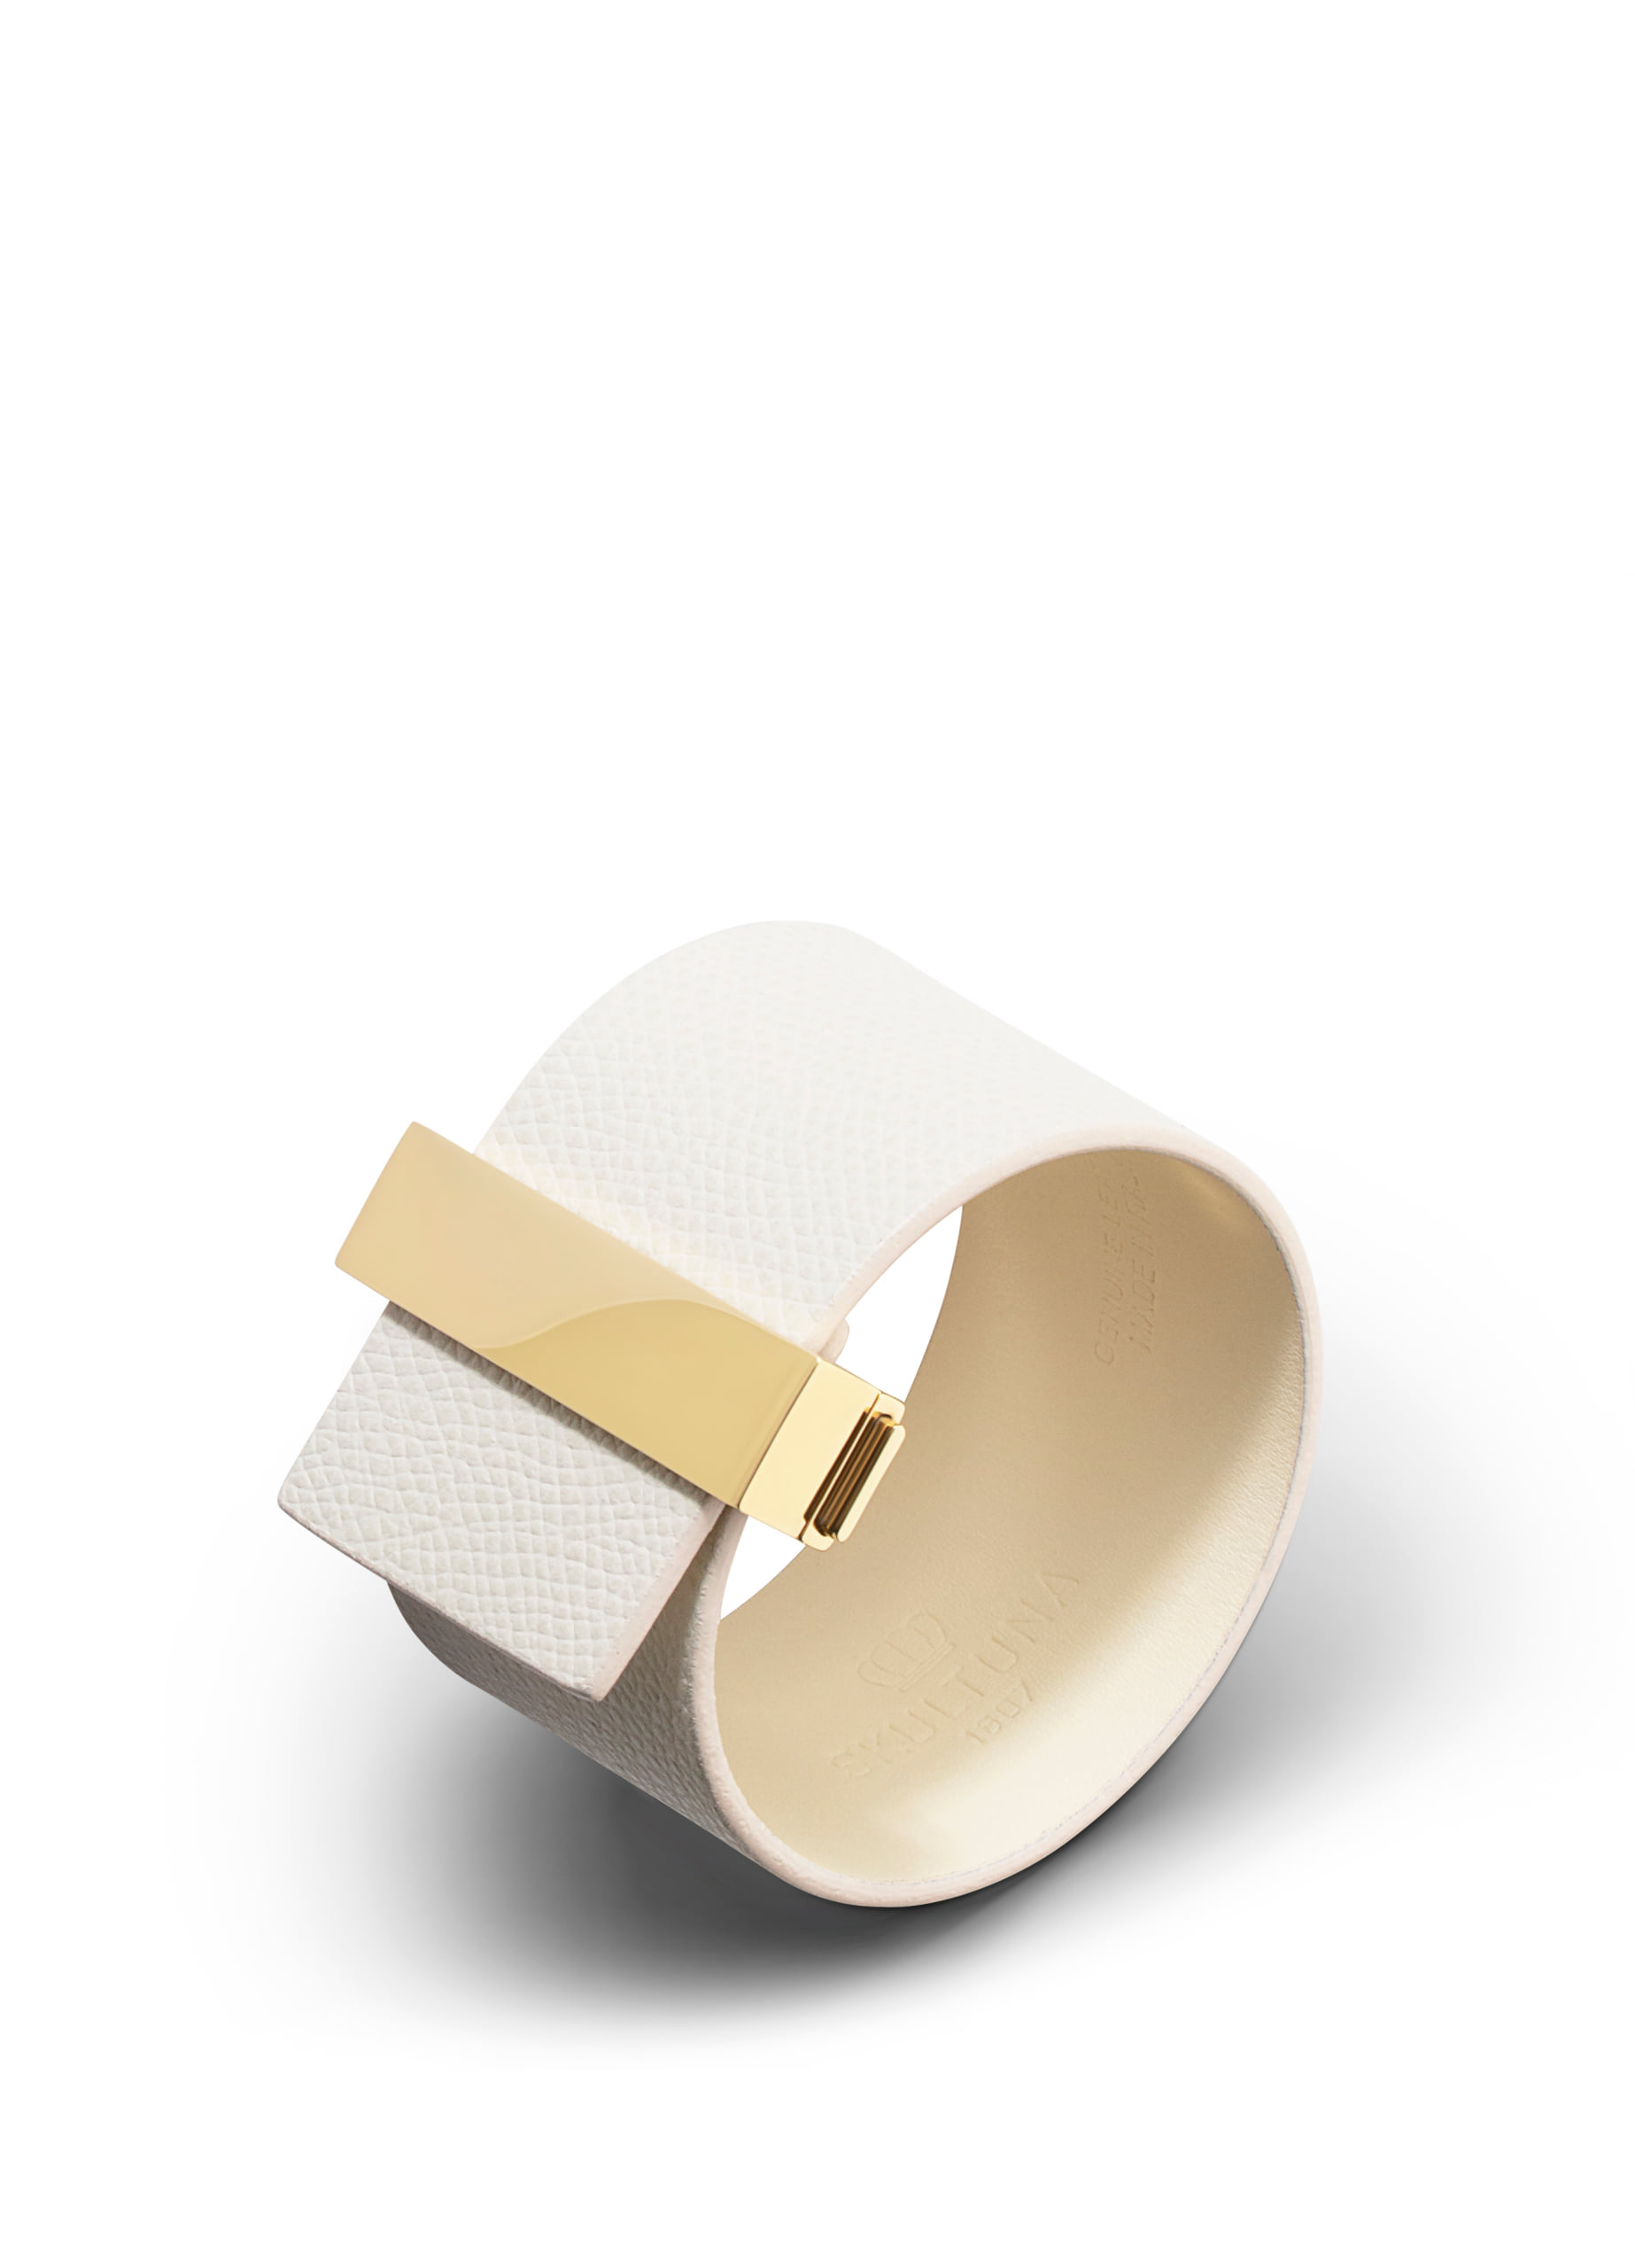 Wide leather bracelet with lock -  Ivory with gold plated